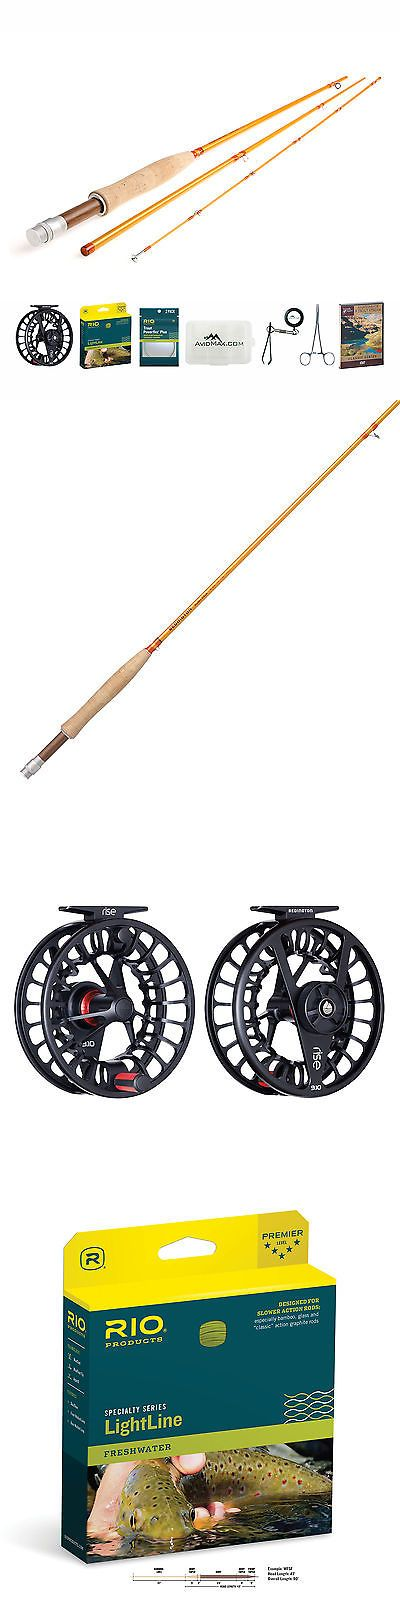 Fly Fishing Combos 33973: Redington Butter Stick Fly Rod And Rise Iii Reel Outfit With Rio Lightline -> BUY IT NOW ONLY: $479.95 on eBay!